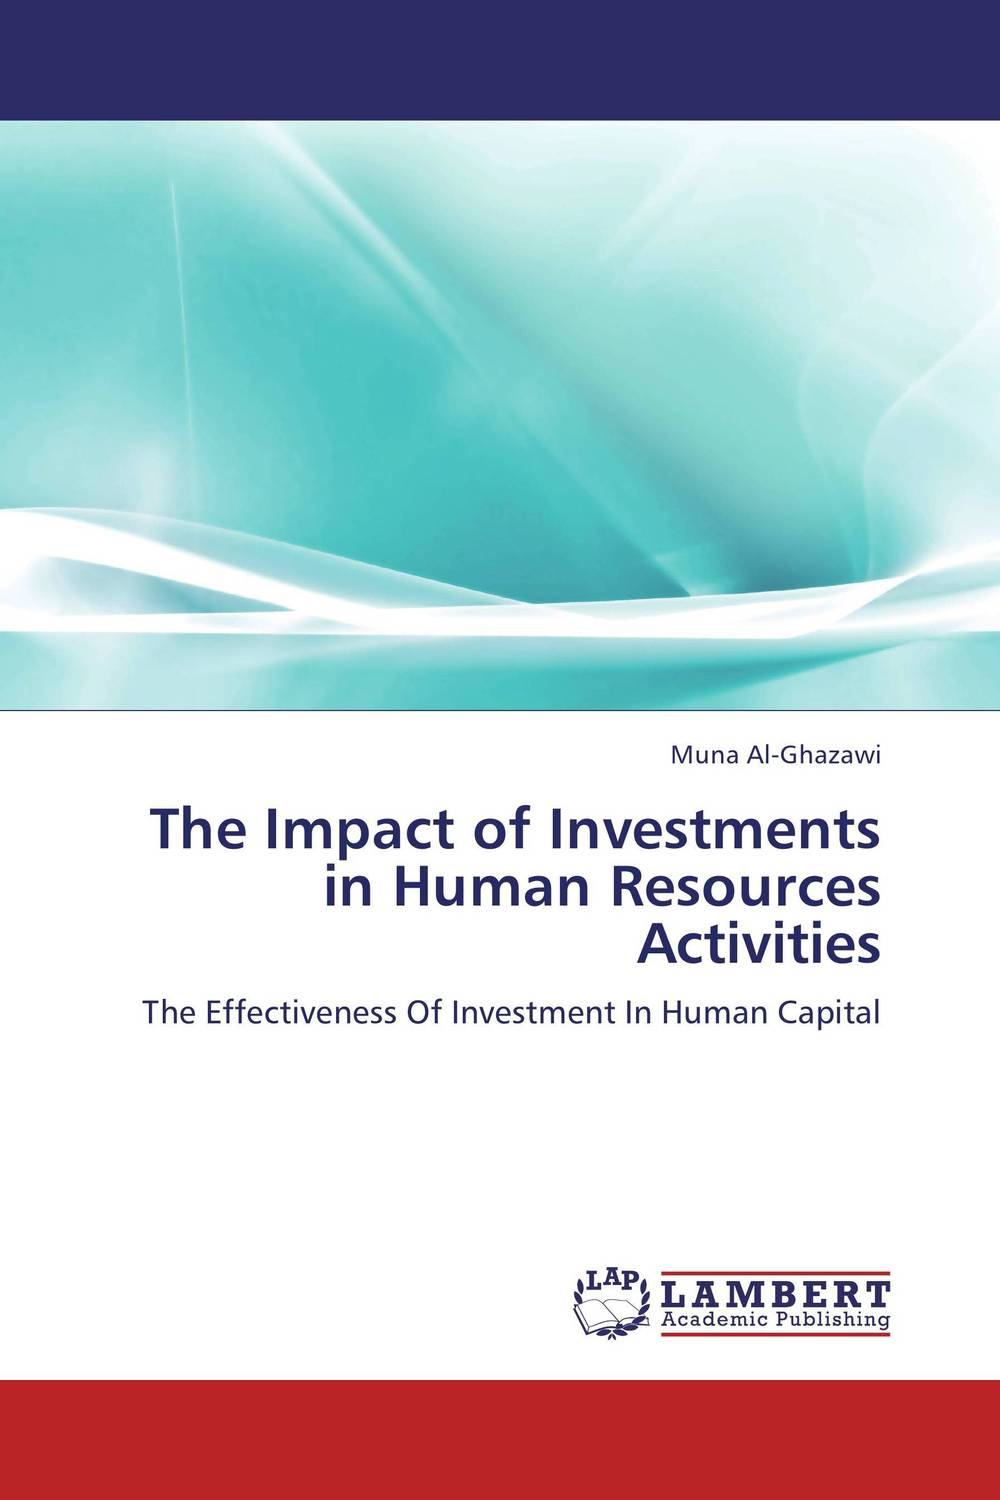 The Impact of Investments in Human Resources Activities gene pease developing human capital using analytics to plan and optimize your learning and development investments